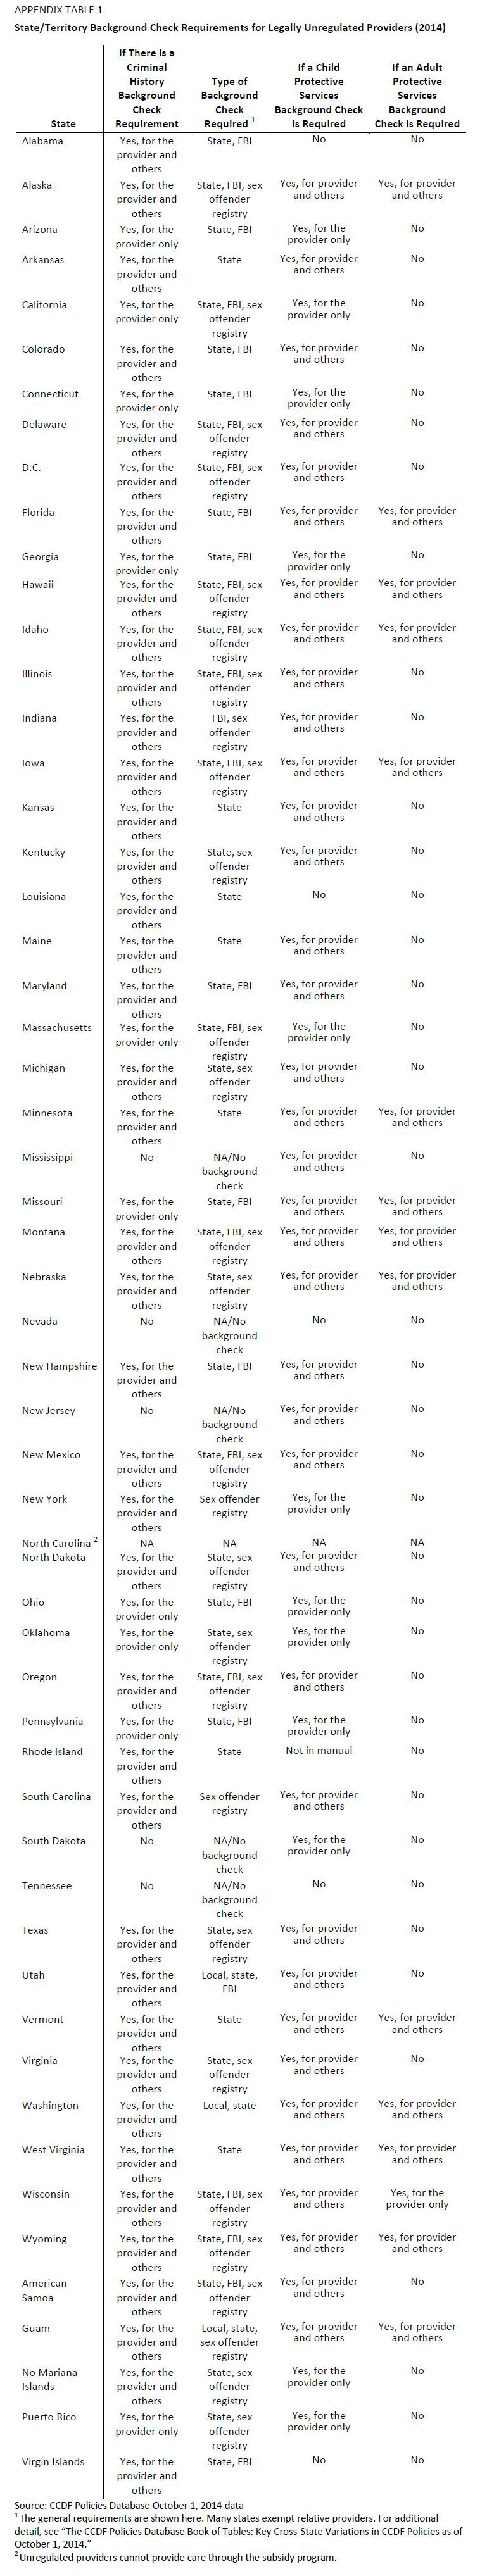 Appendix Table 1. State and Territory Background Check Requirements for Legally Unregulated Providers (2014)